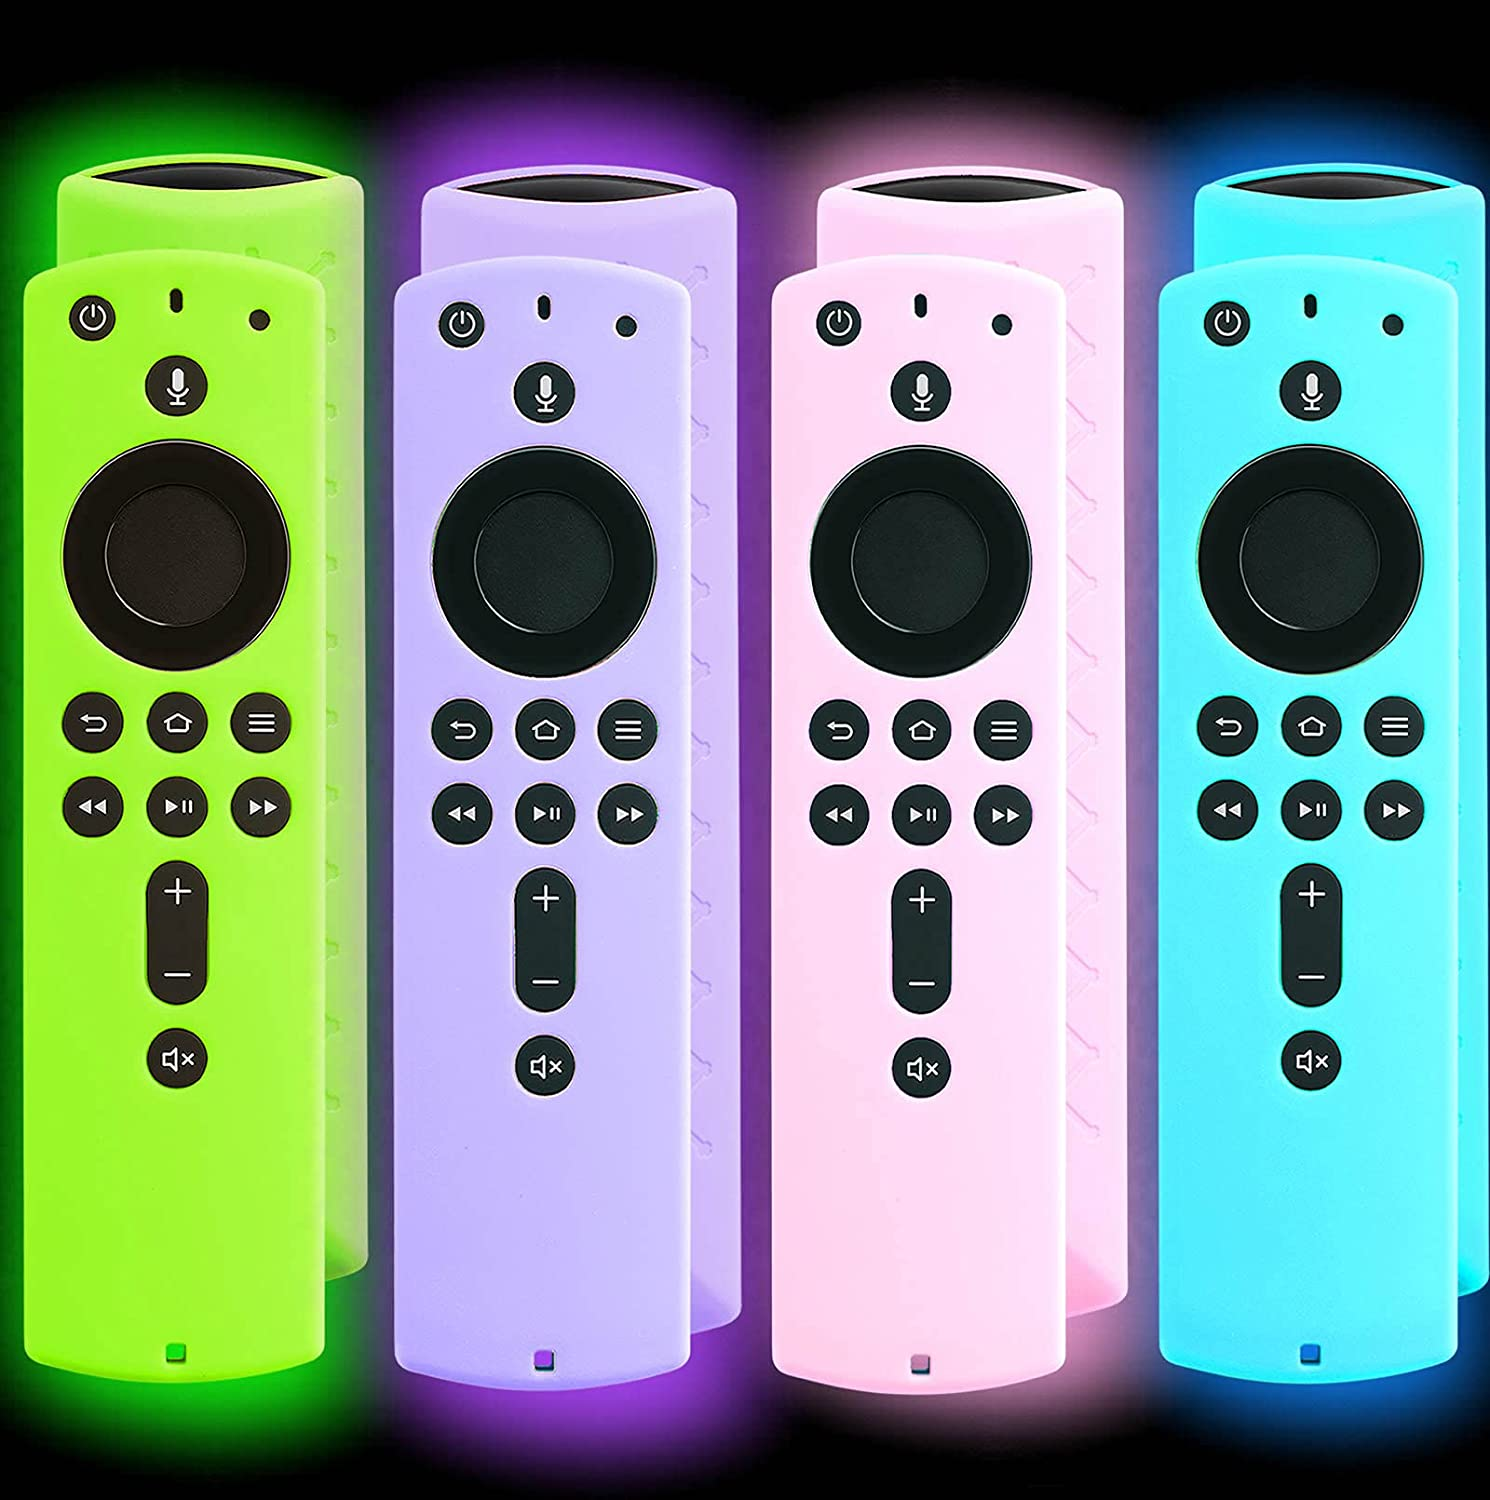 Packprint 4 Pack Firestick Cover Glow in The Dark Compatible with 2nd Generation 4K Amazon Fire Stick Remote, Firestickremote TV Remote Cover, for Fire Stick Remote Blue Green Pink Purple